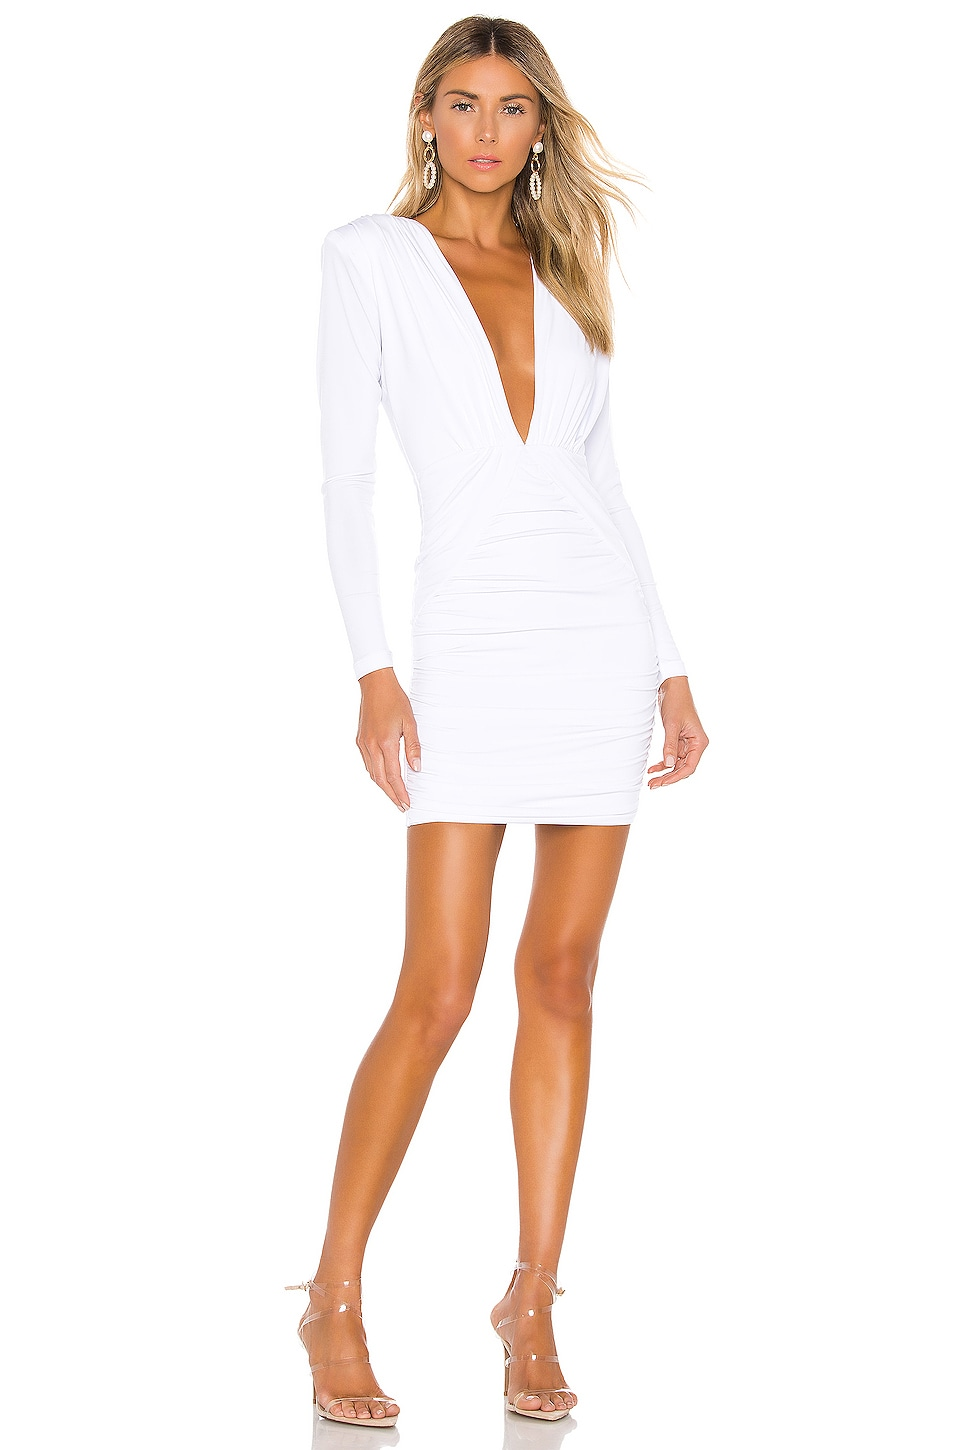 52743862ecd The Perfect White Outfits Every Bride-to-Be Needs for Every Event ...